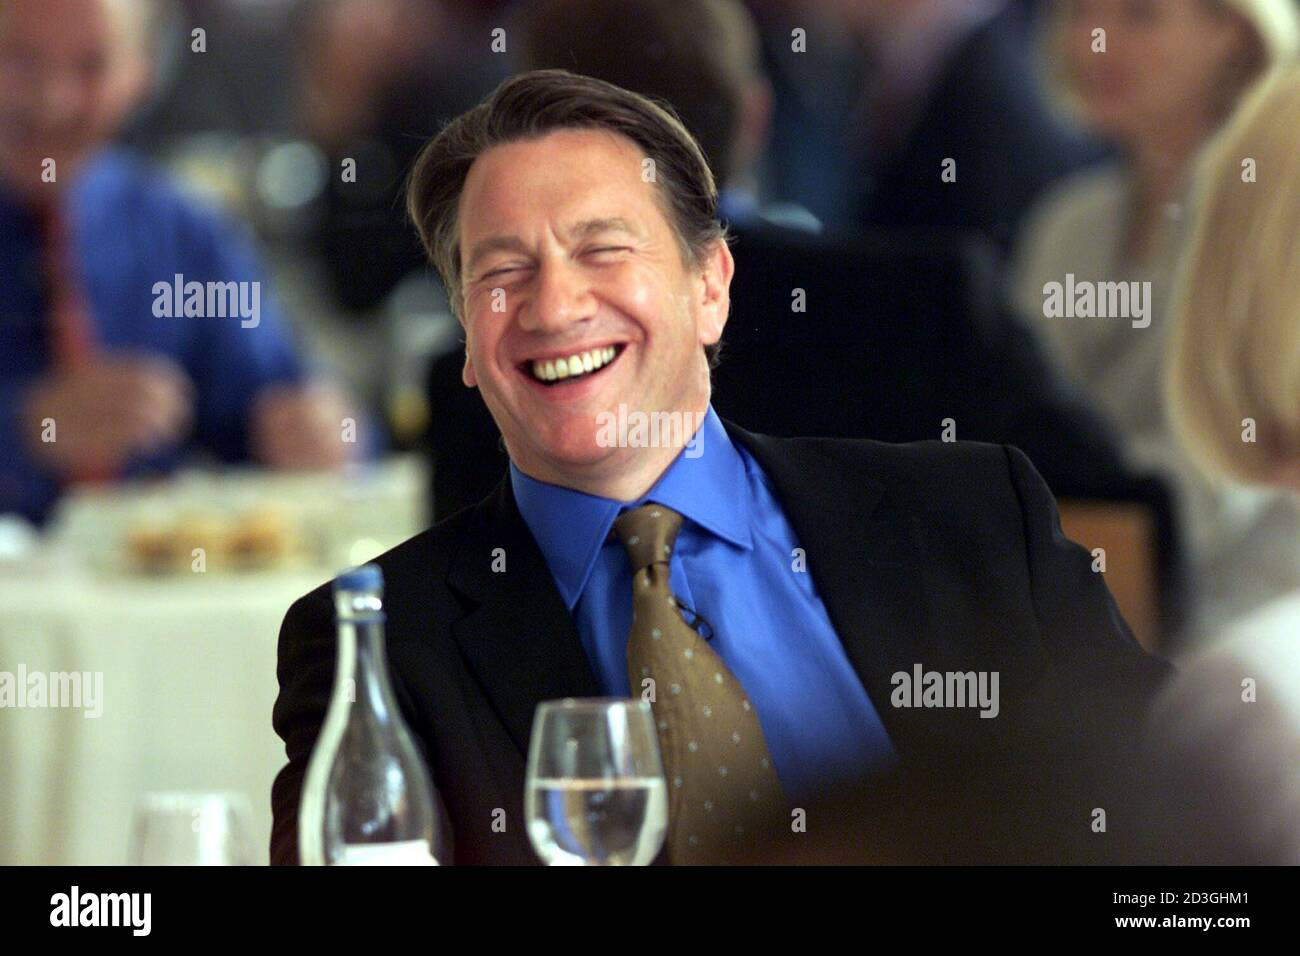 Britain's Shadow Chancellor Michael Portillo laughs as he officially launches his campaign manifesto for the leadership of the British Conservative Party June 21, 2001 at the Avenue Restaurant in London. Speaking at the official launch, Portillo told his audience of supporters that the Conservative Party needed to have the courage to make a change.  BR Stock Photo